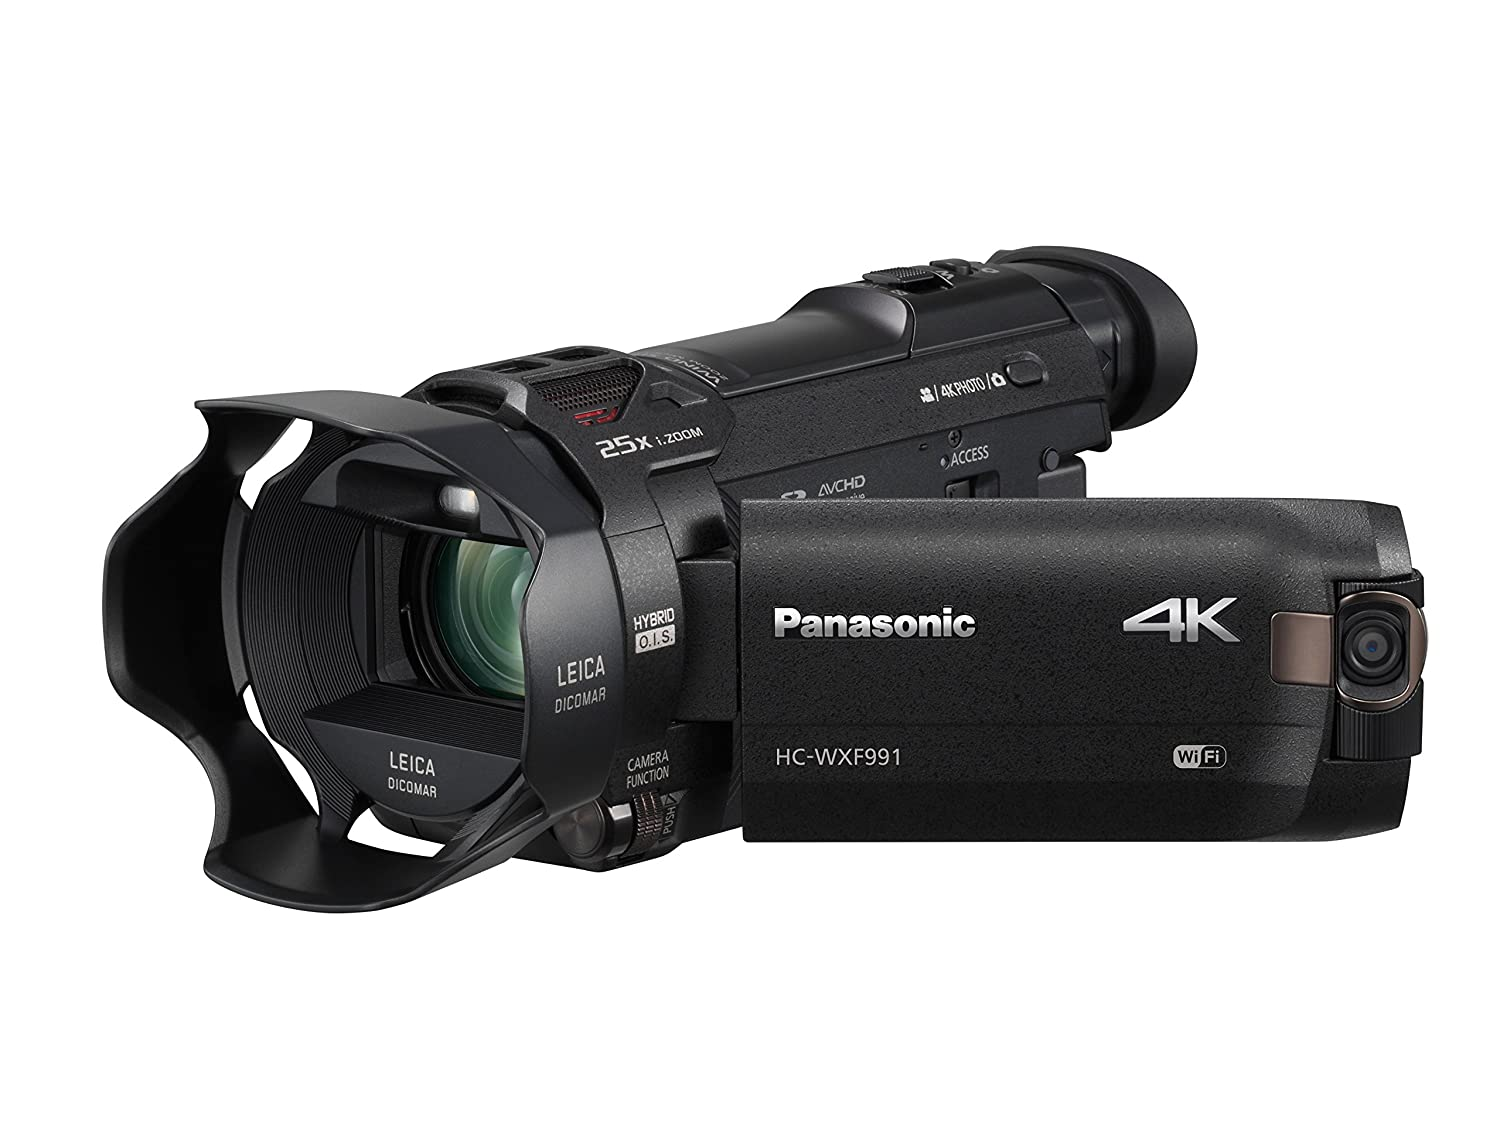 Best Camcorders 2020.Top 10 Best Ultra Hd Camcorders 4k Reviews 2019 2020 On